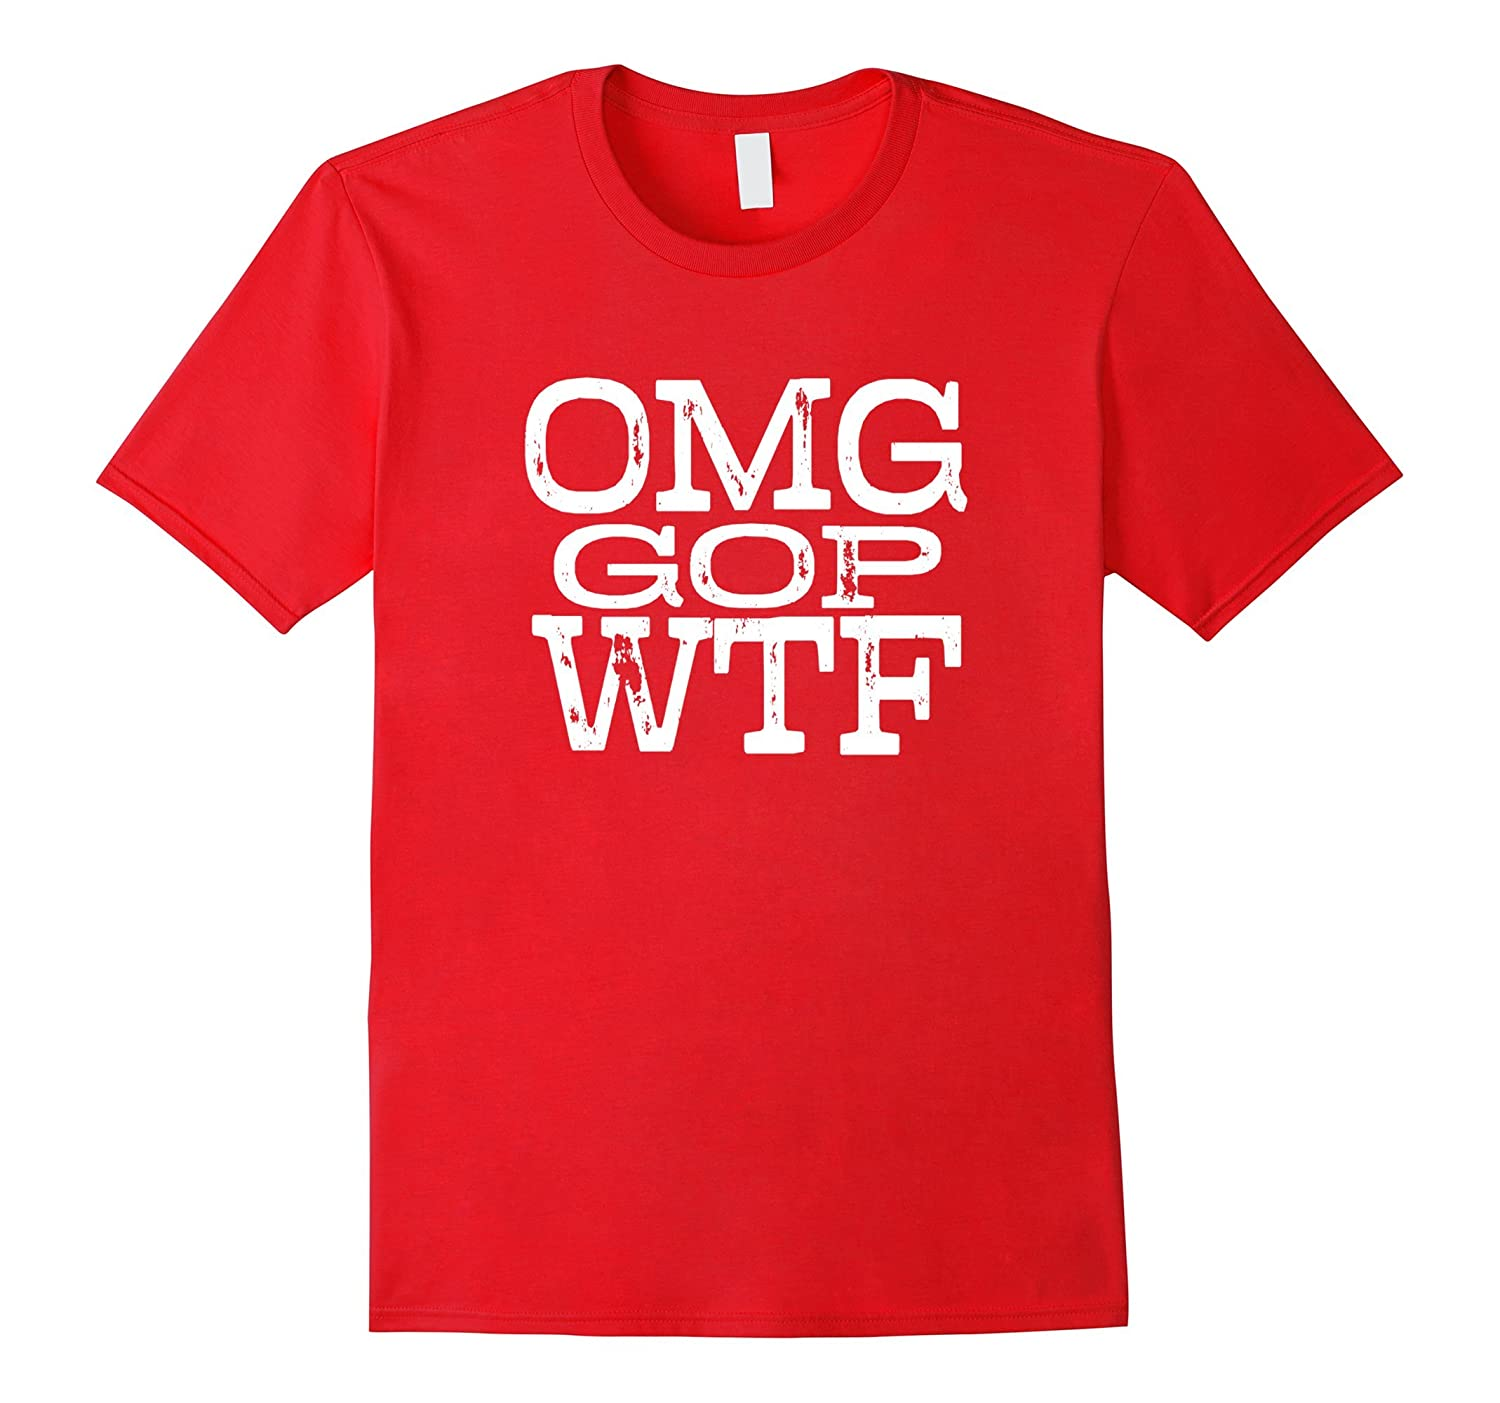 OMG GOP WTF - Funny Election Shirt 2016-Art